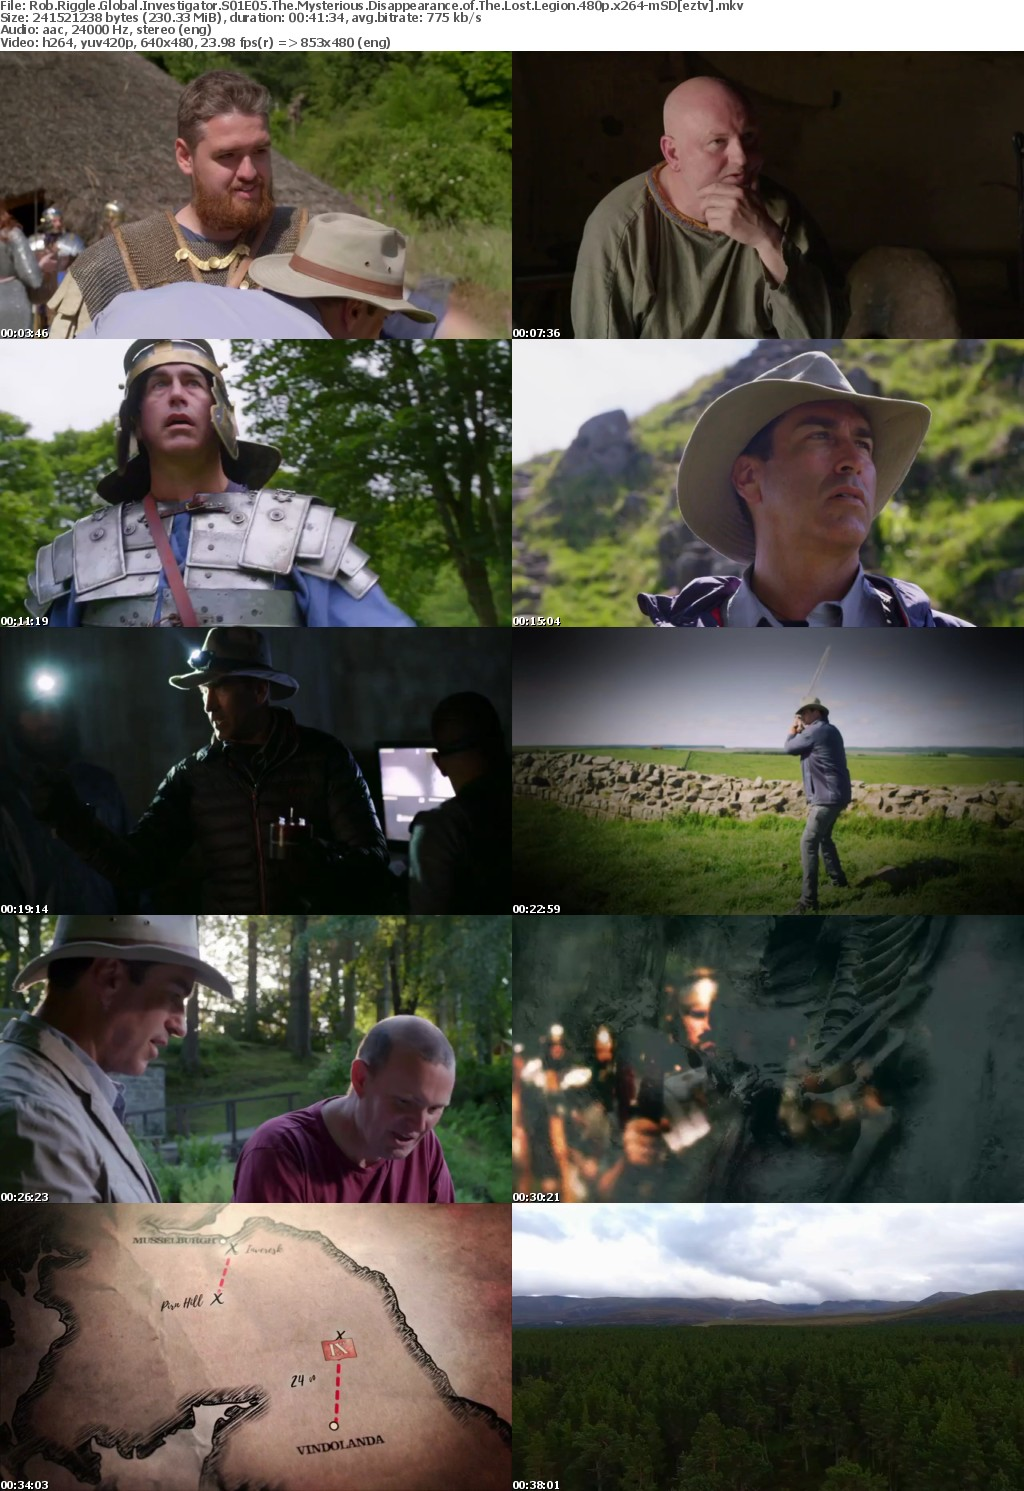 Rob Riggle Global Investigator S01E05 The Mysterious Disappearance of The Lost Legion 480p x264-mSD